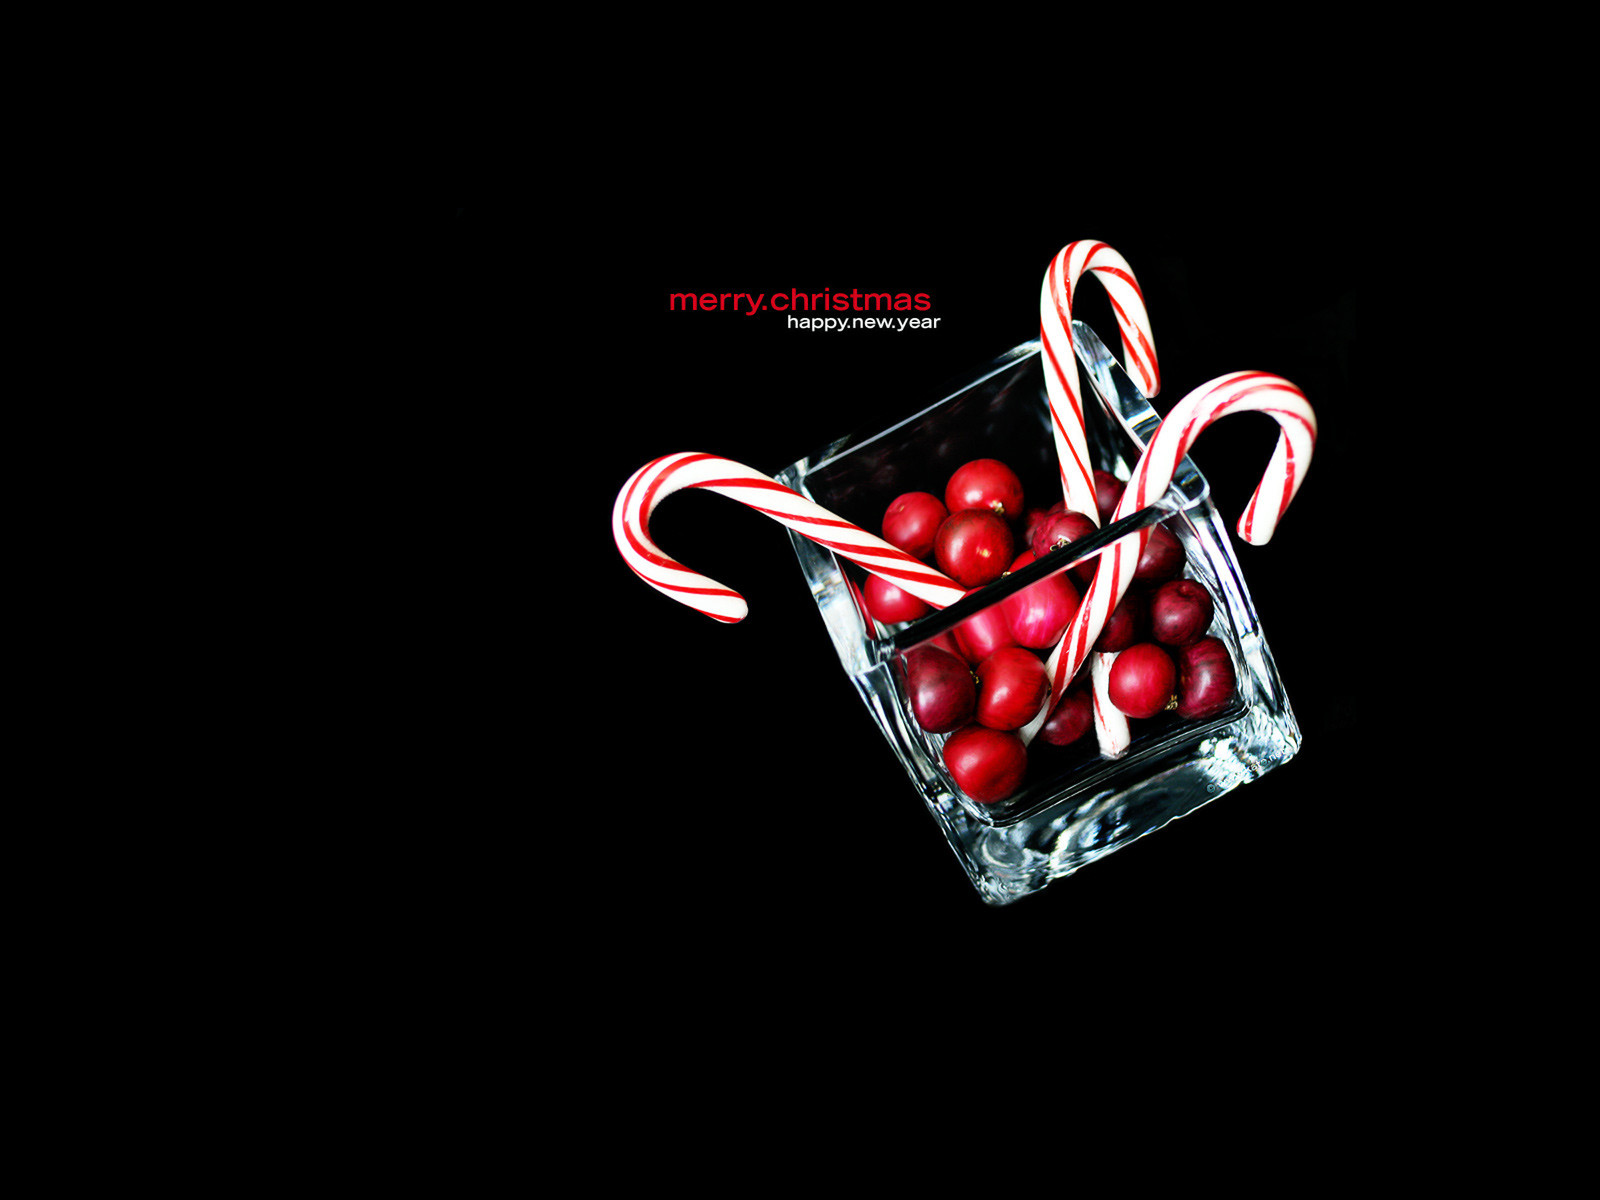 Christmas Candy Wallpaper  Christmas Candy Cane Wallpapers [HD]